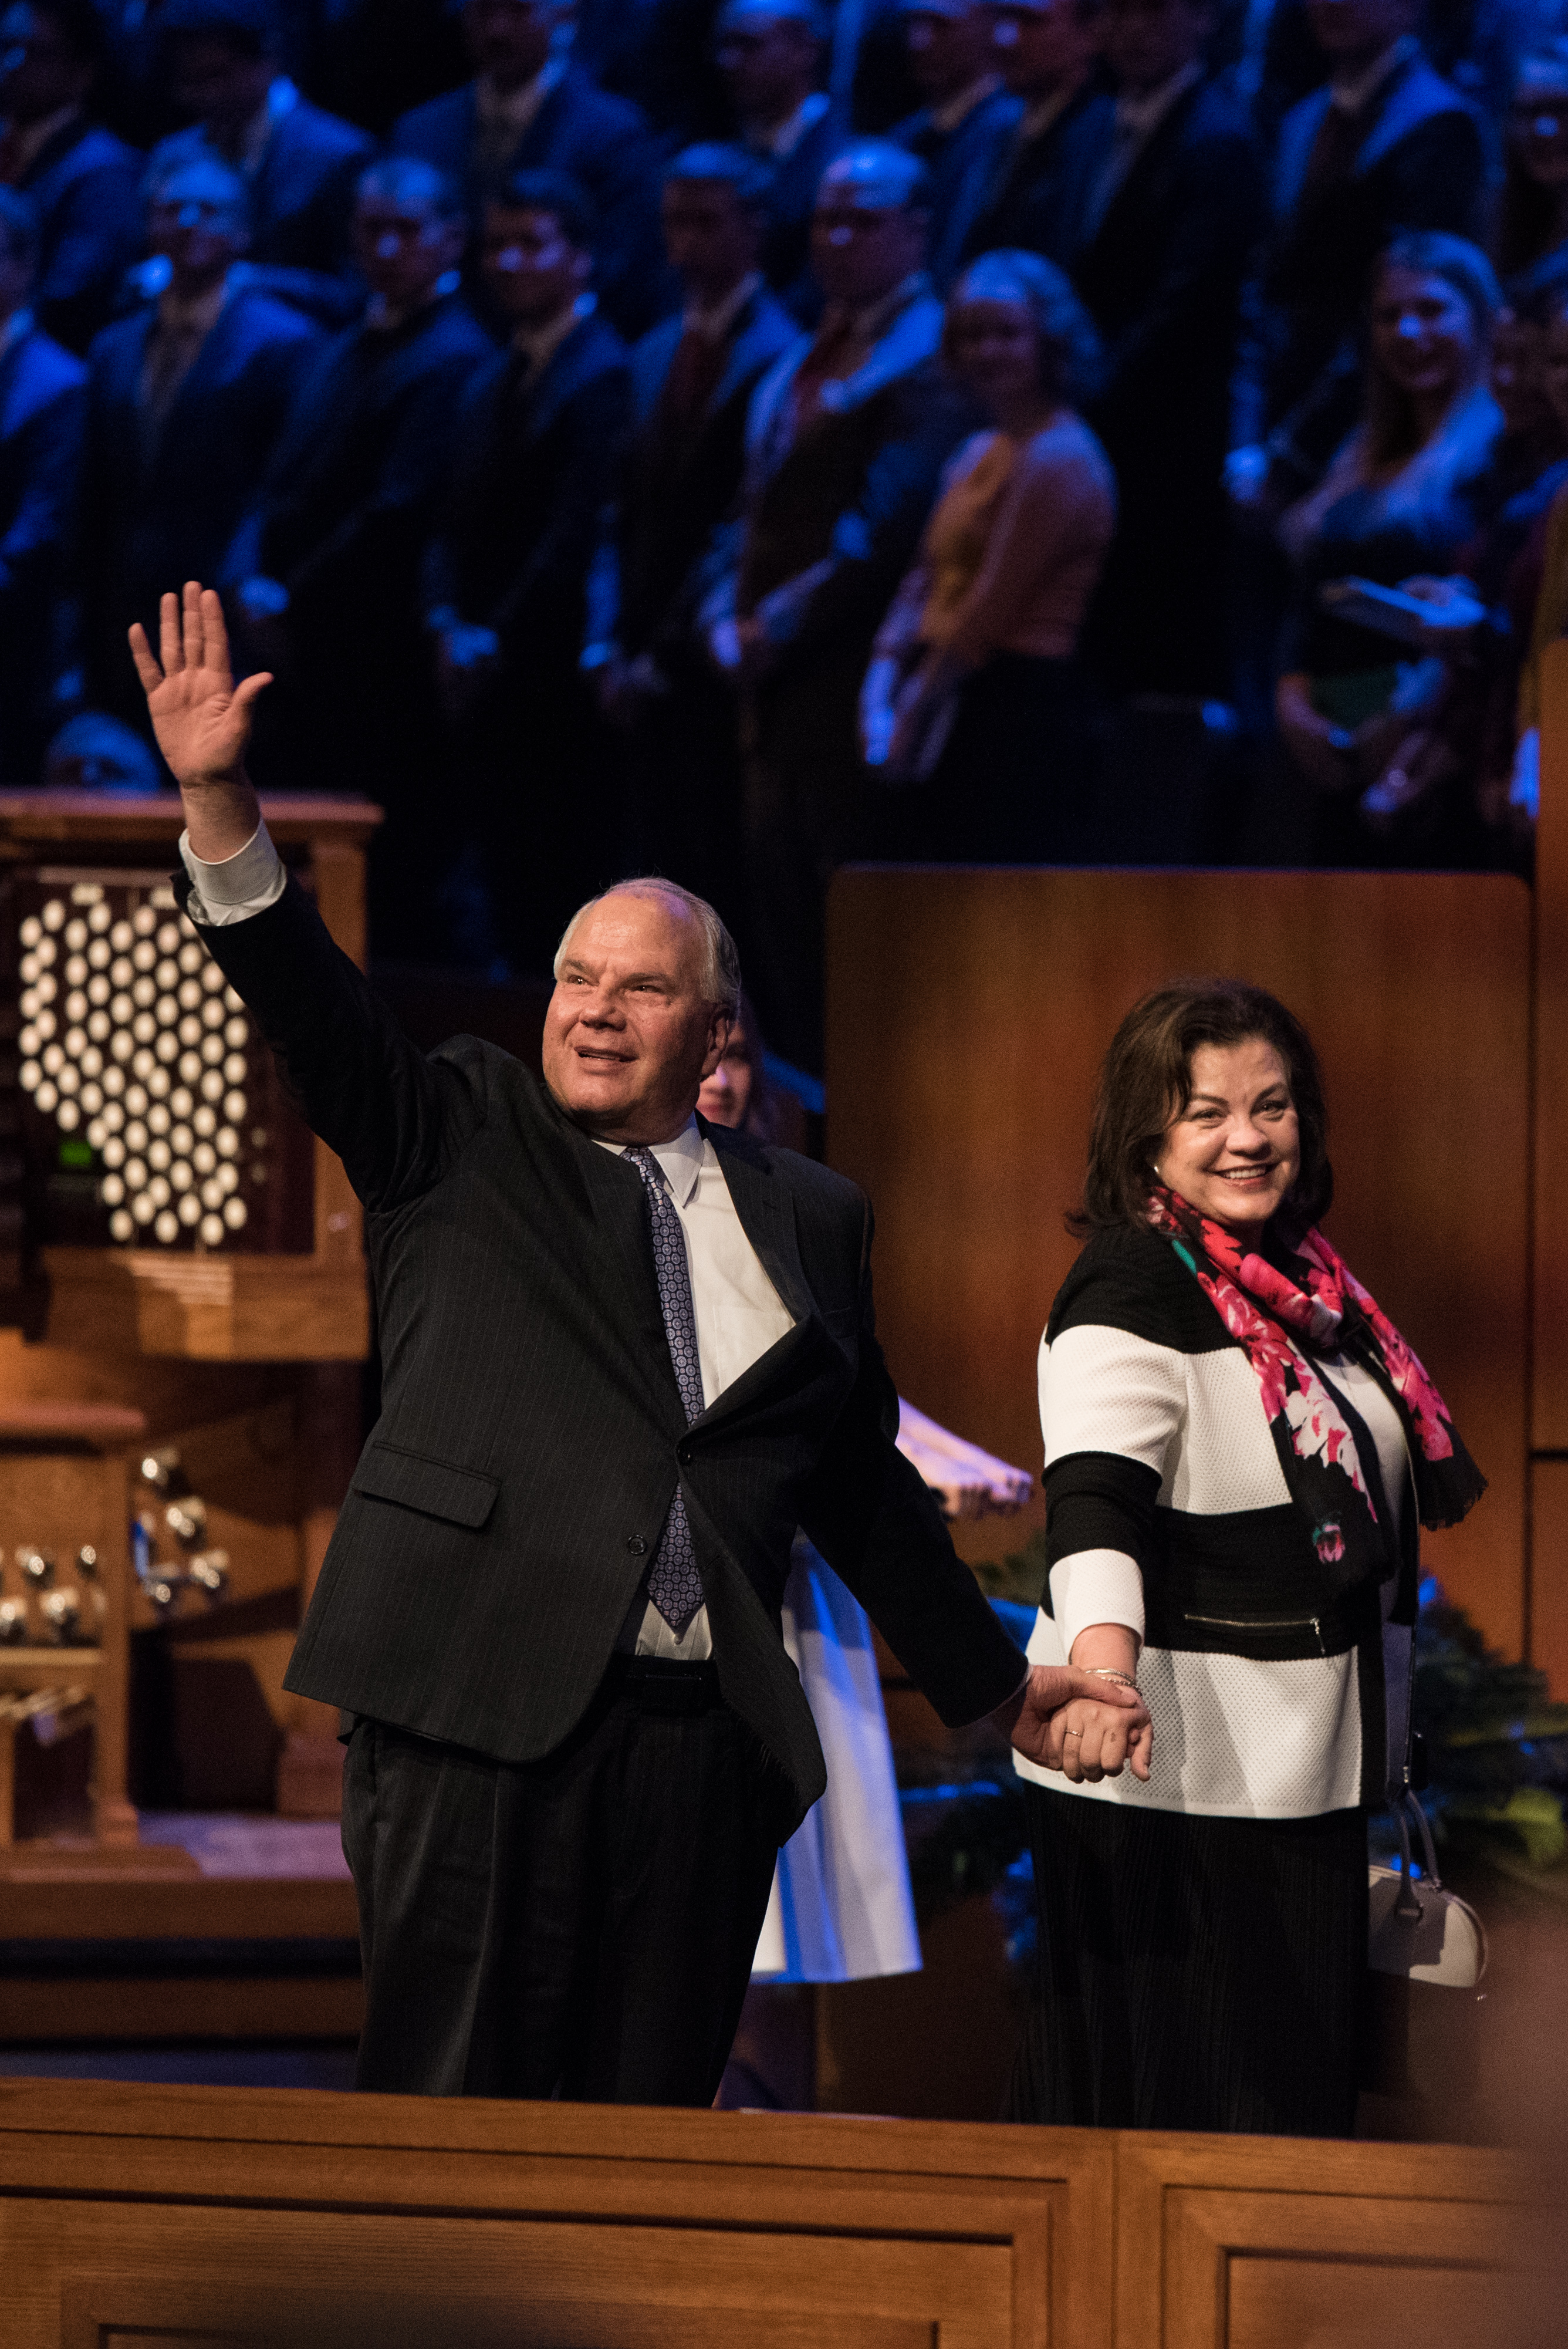 Elder Ronald A. Rasband waves to students as he and his wife, Sister Melanie Rasband, leave following a devotional held on April 28, 2019.